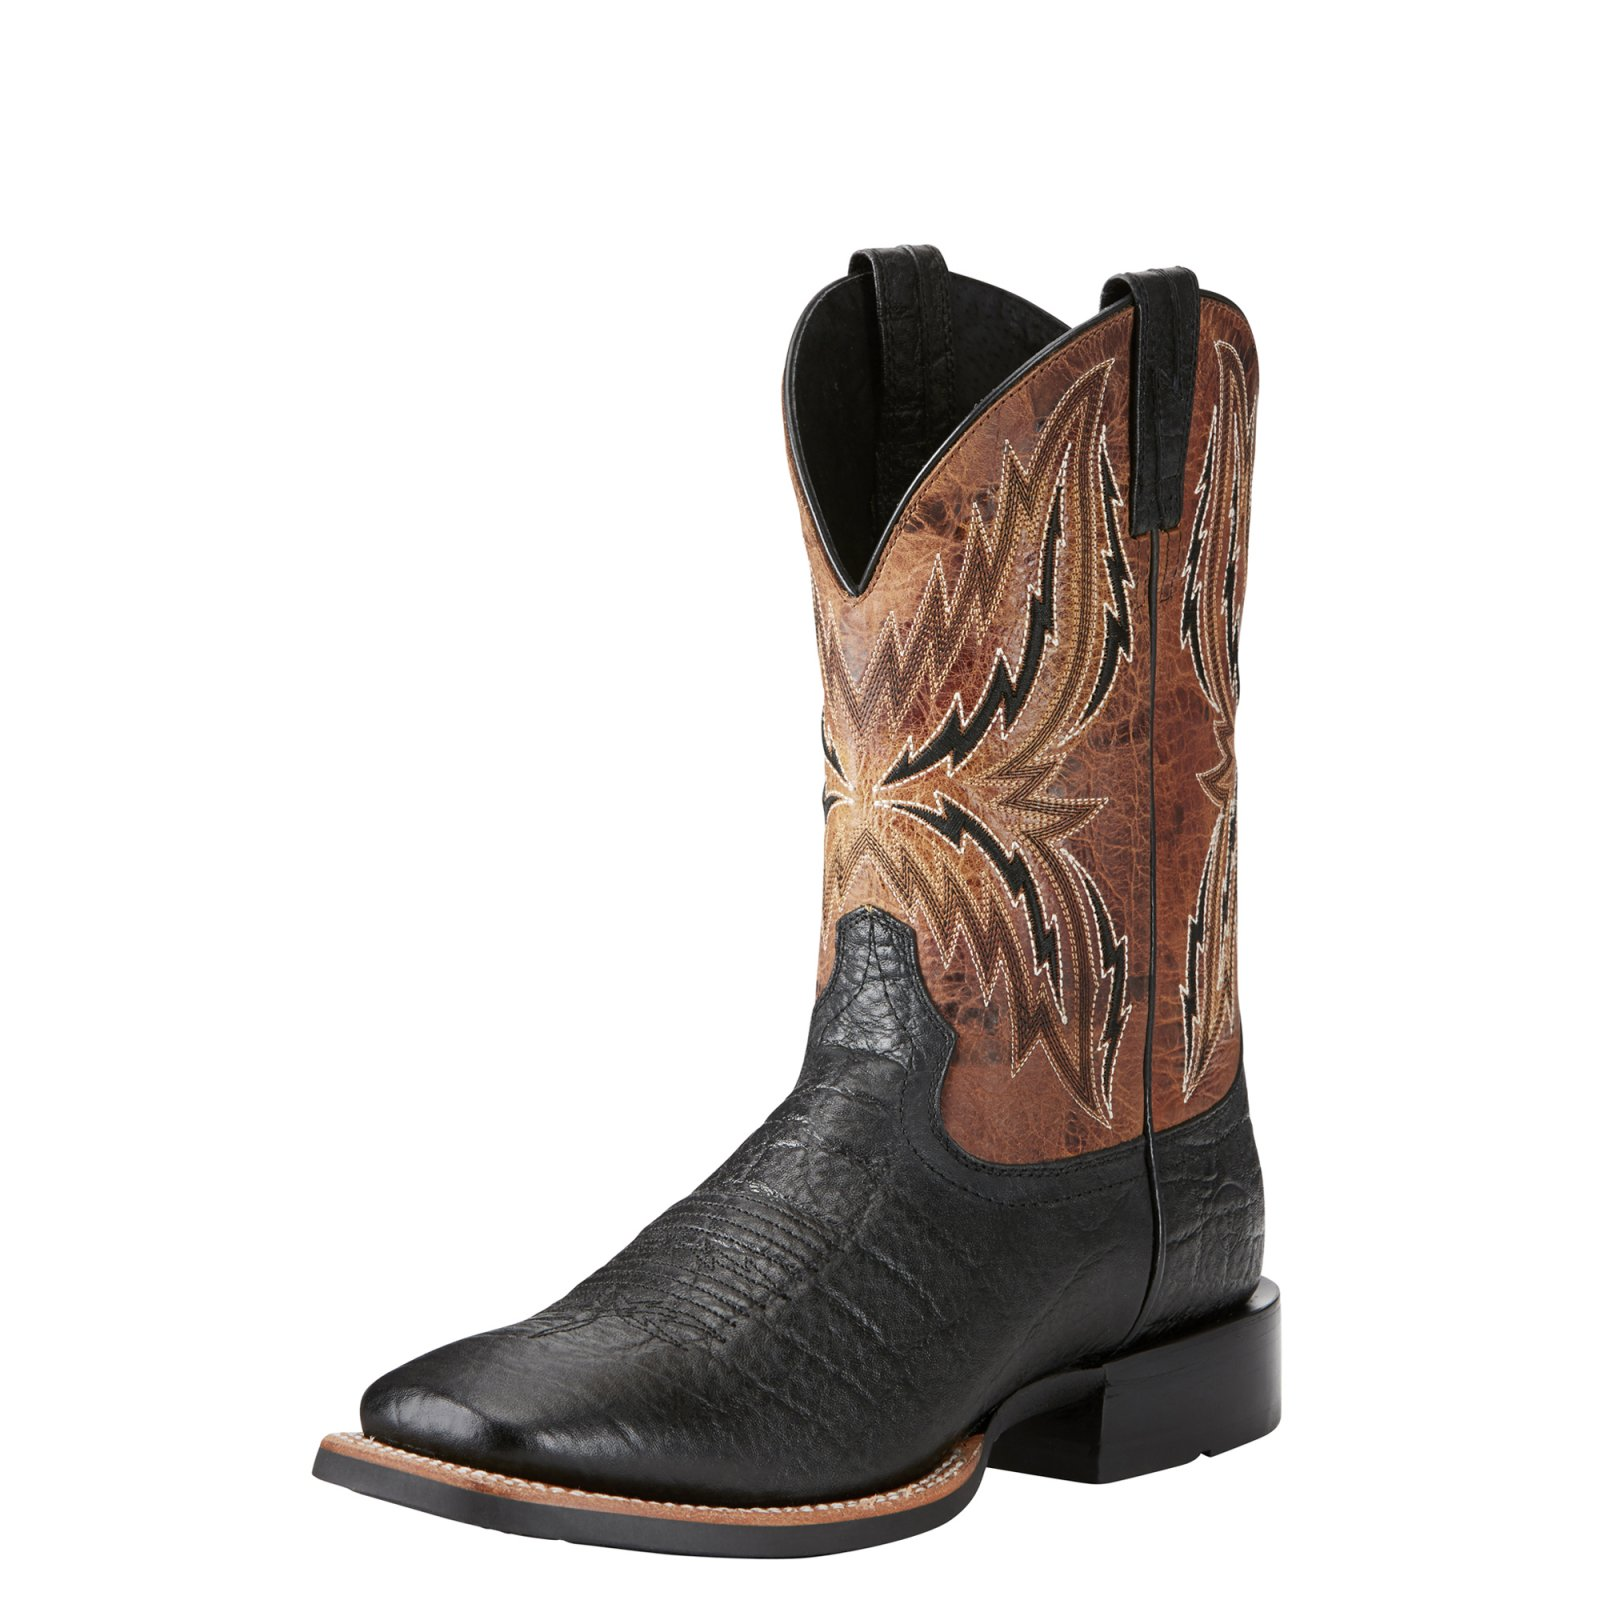 Arena Rebound from Ariat